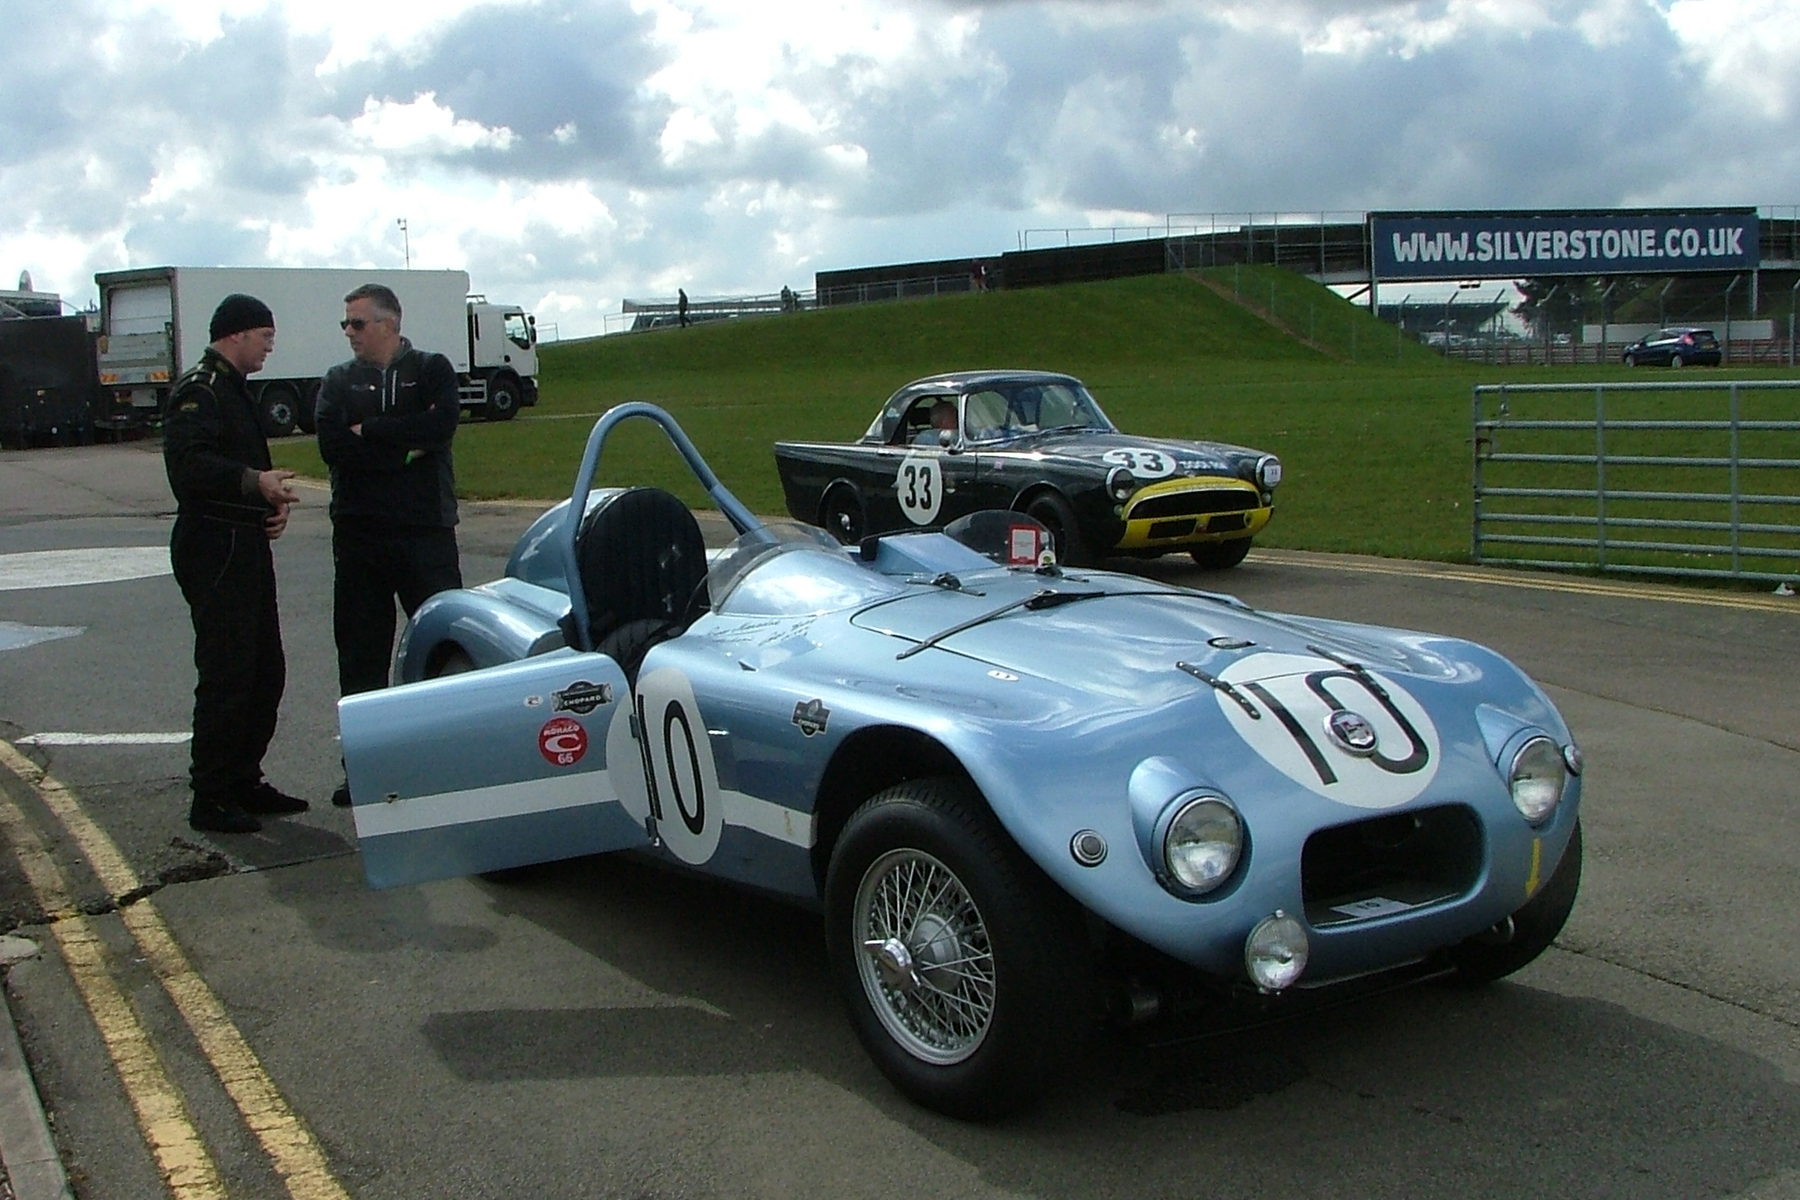 Awaiting practice! Sam Stretton extolls the virtues of the 1952 Nash Healey that finished 3rd at Le Mans in 1952,to our sponsor, Paul Woolmer. Behind,Keith Hampson sits quietly in his Sunbeam Alpine Le Mans. Photos - John Turner